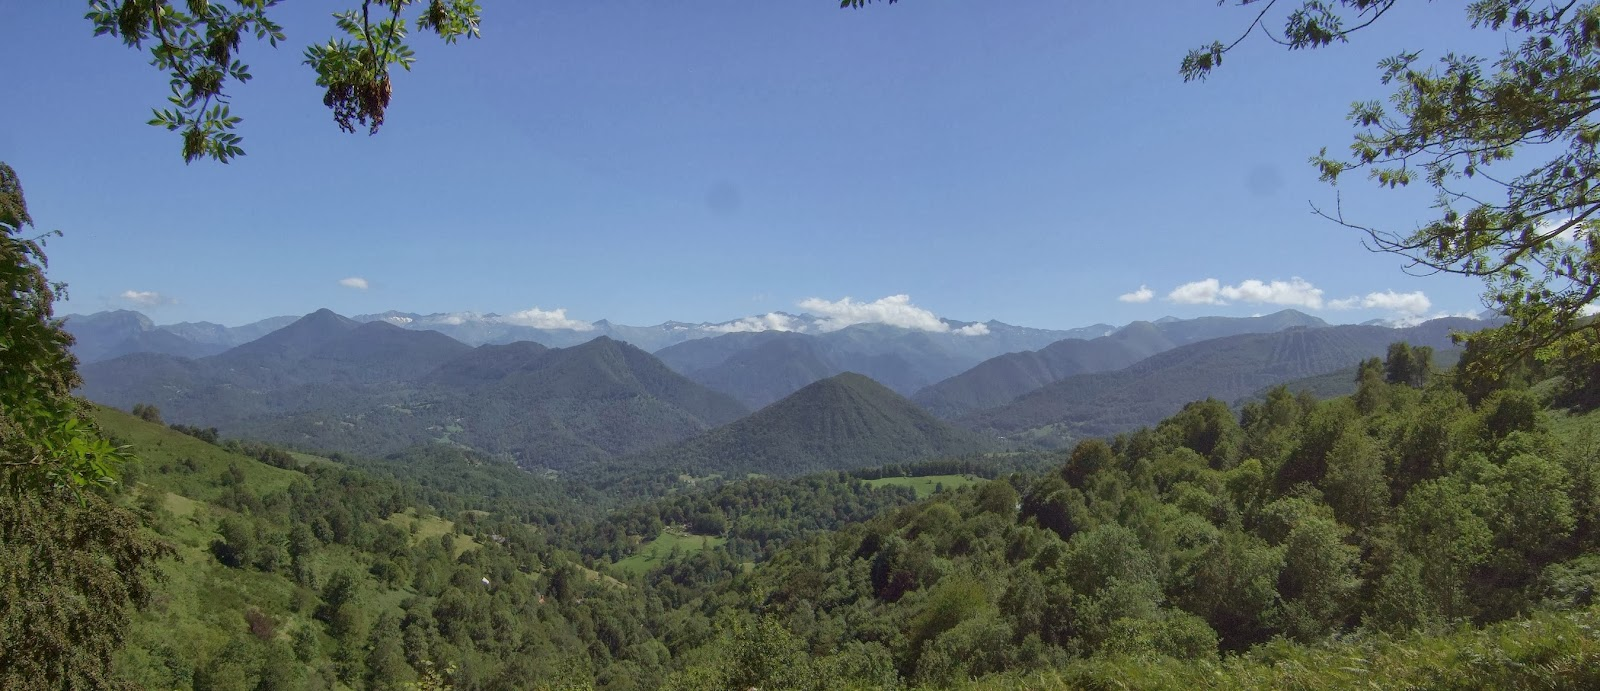 Great view across to the high Pyrenees from near where Louis Barreu was killed.